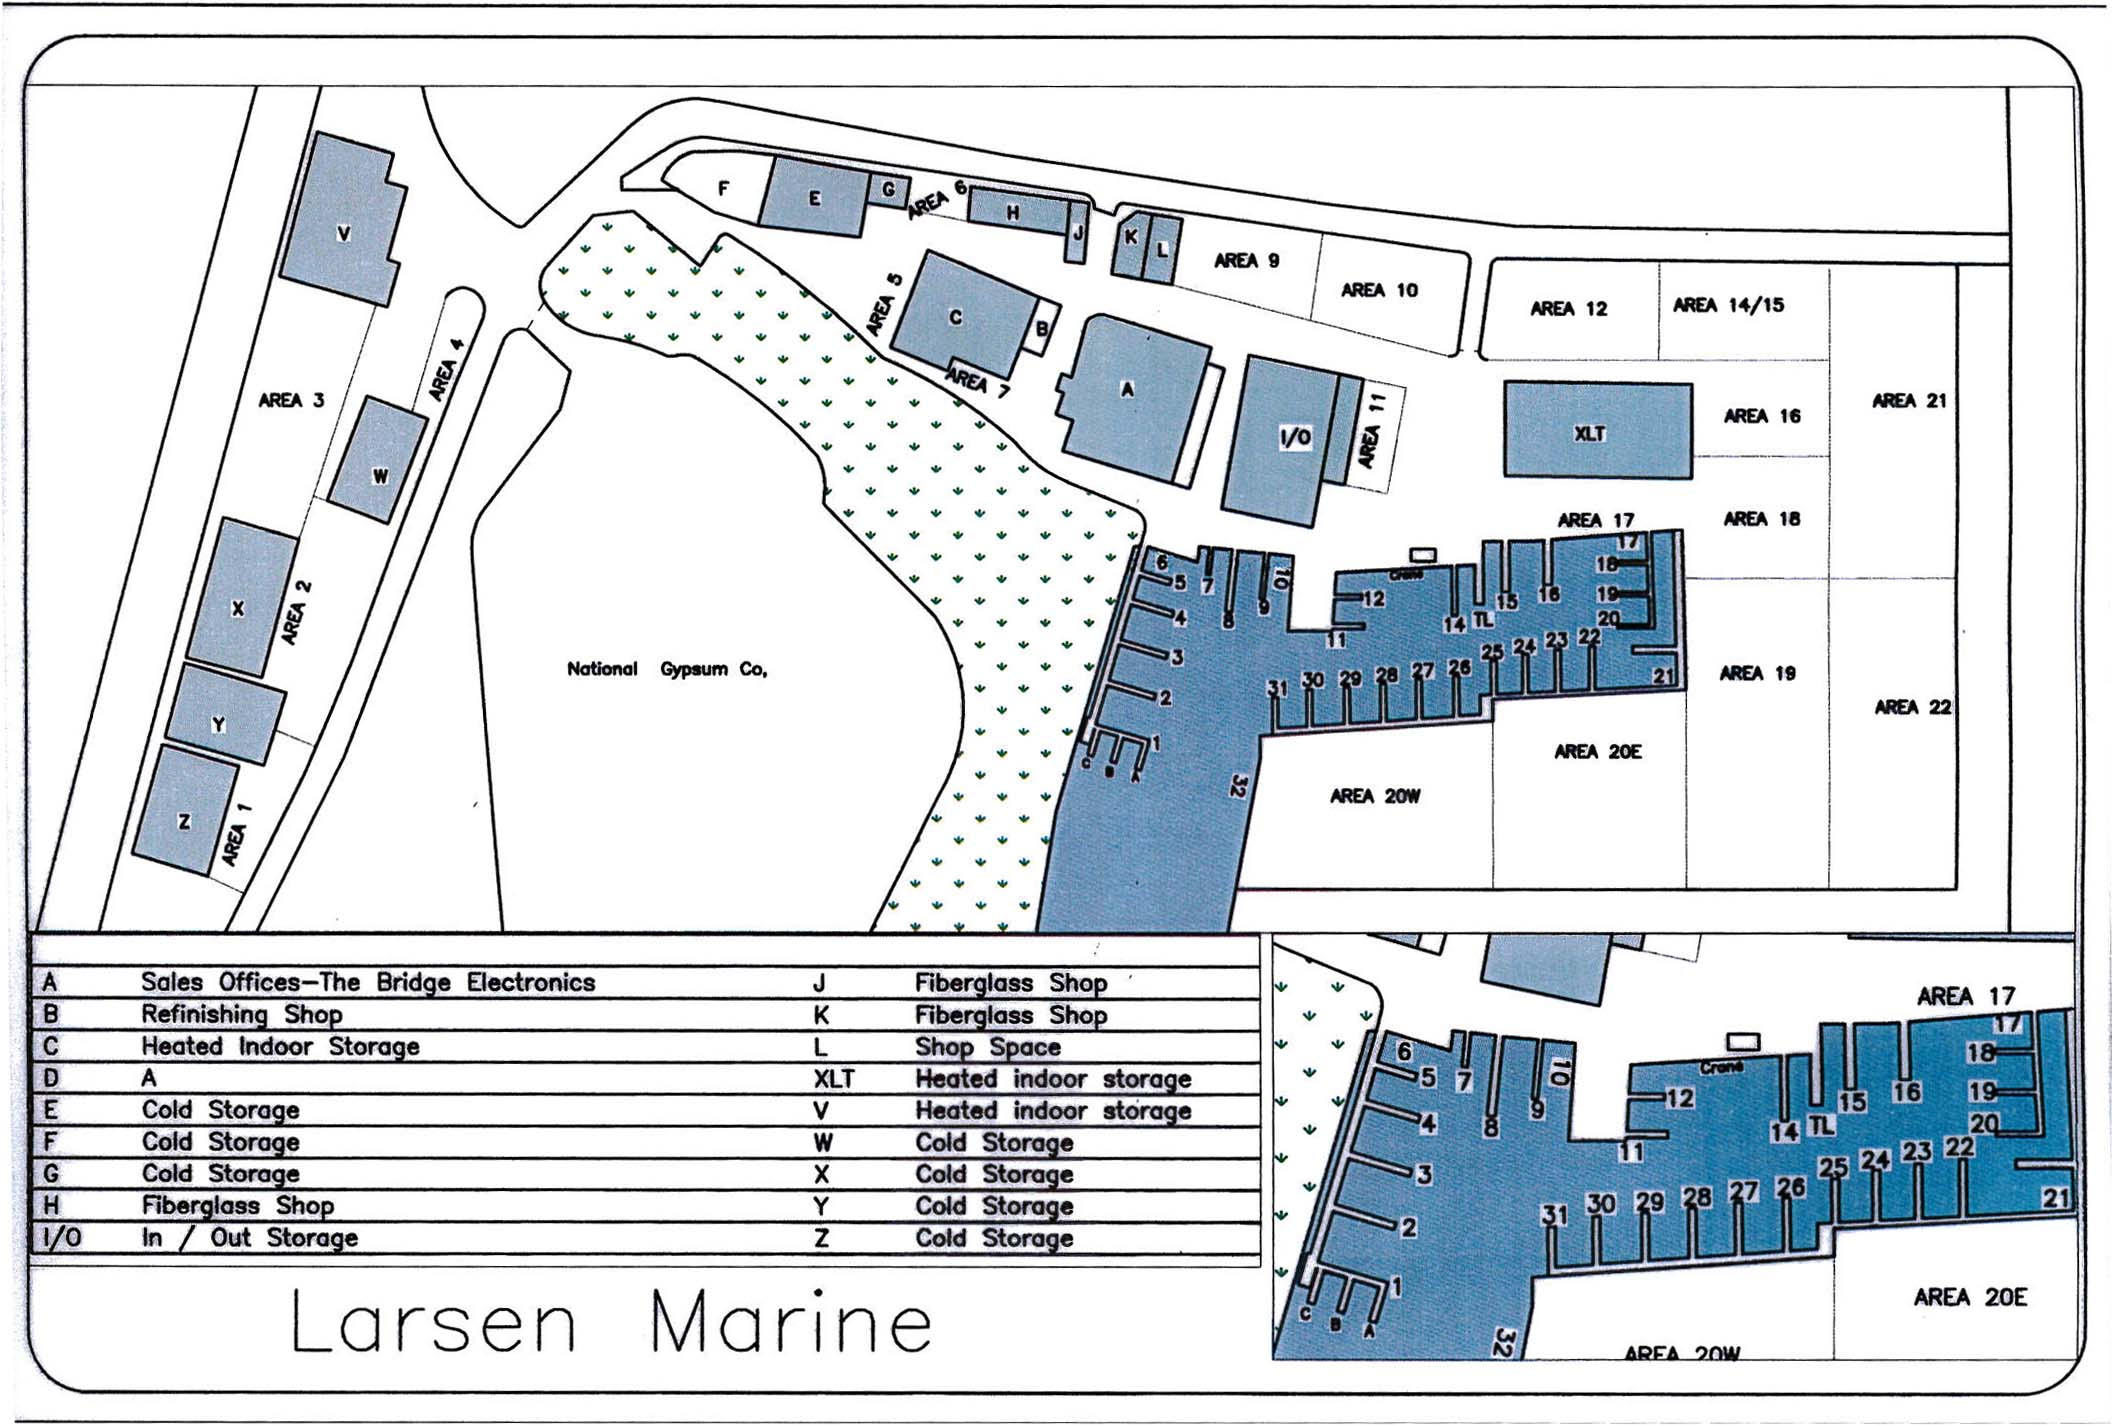 Larsen Marine Yard Map 9 2019